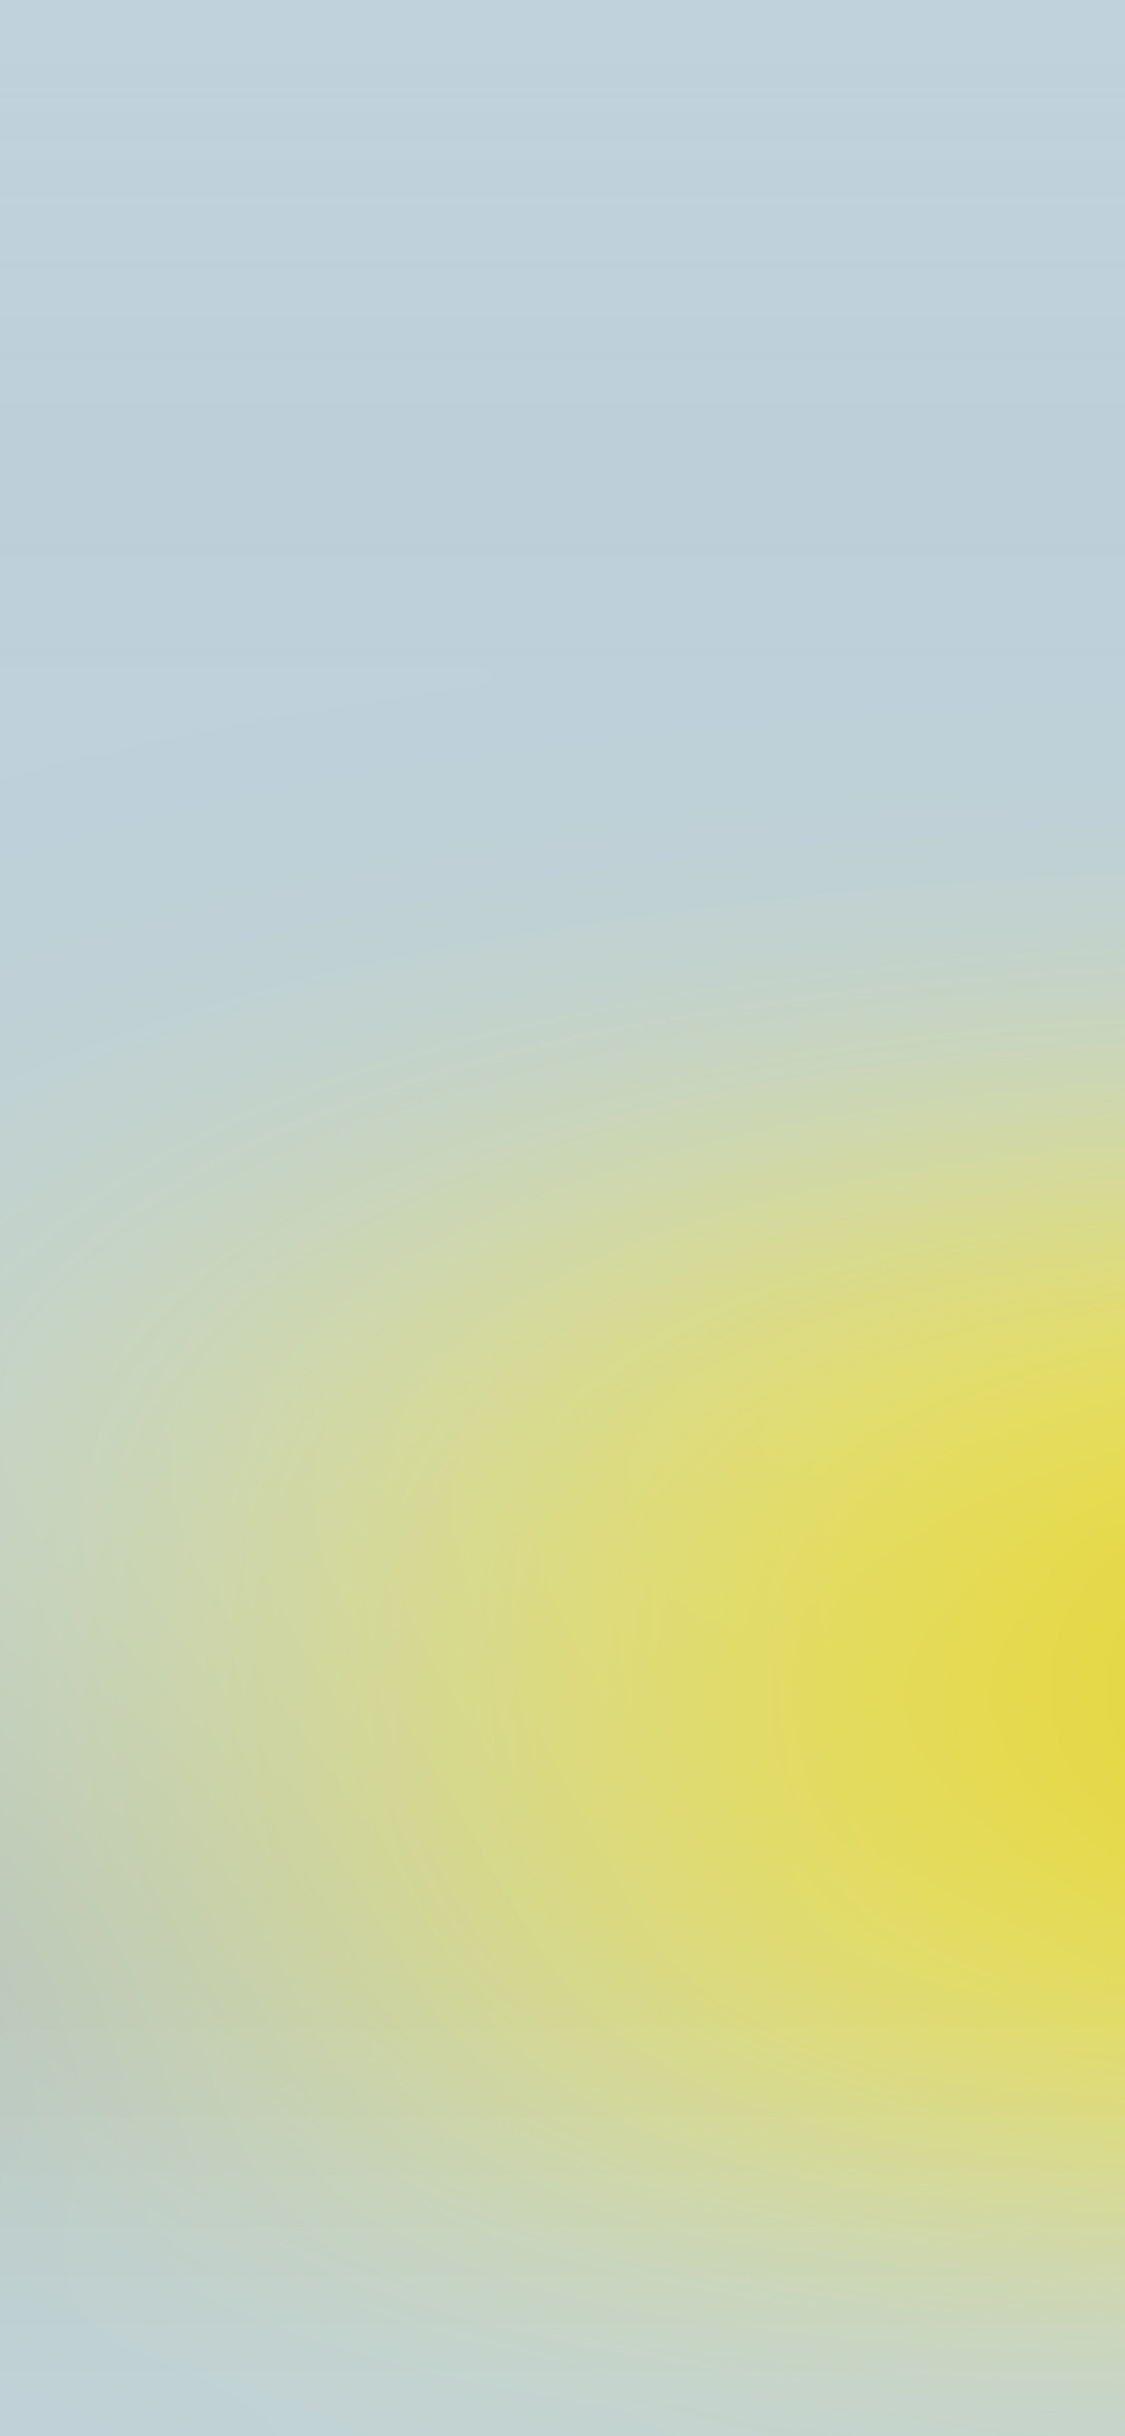 iPhoneXpapers.com-Apple-iPhone-wallpaper-sf83-spring-gaze-ribbon-yellow-gradation-blur